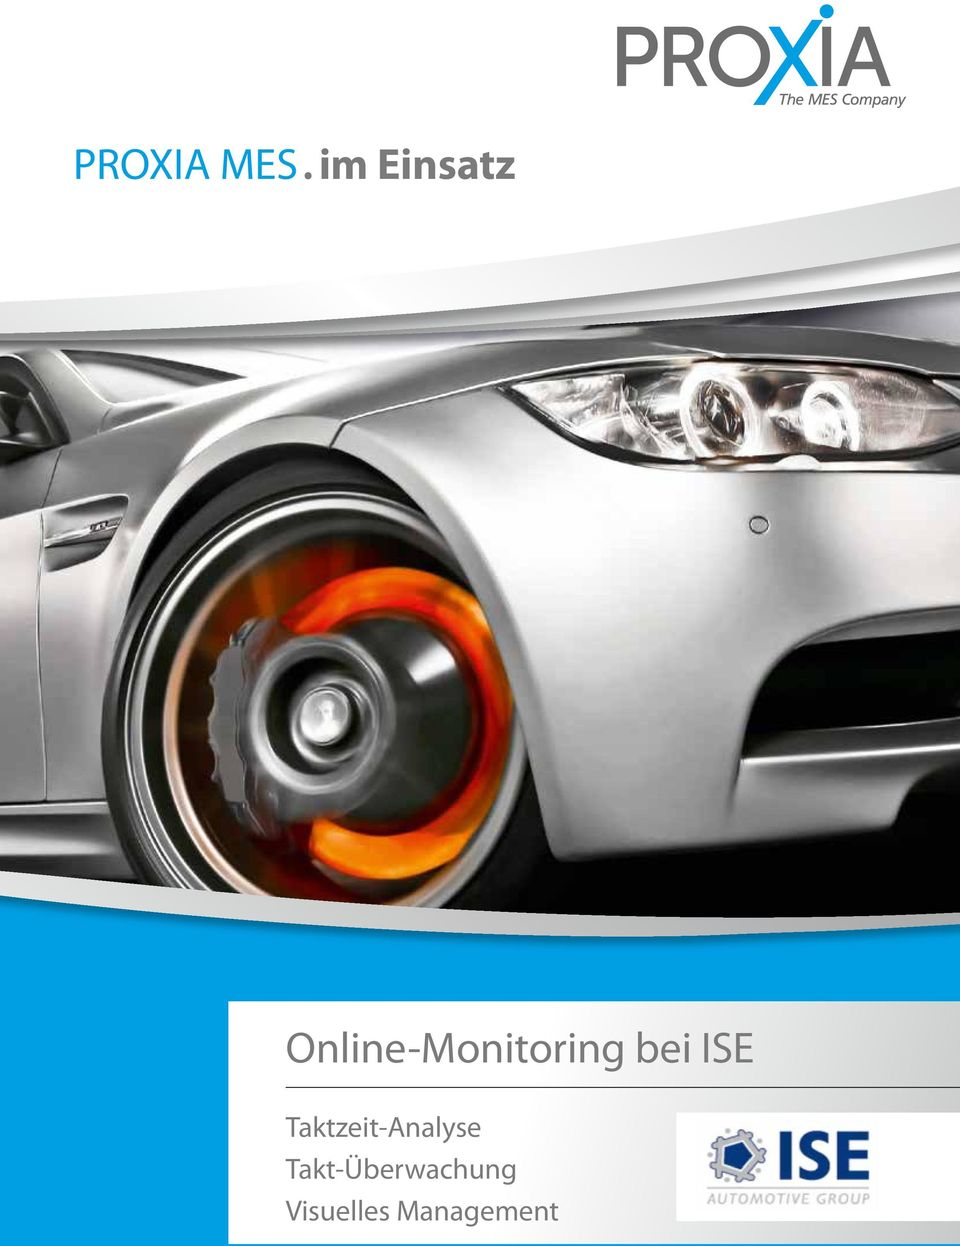 Online-Monitoring bei ISE